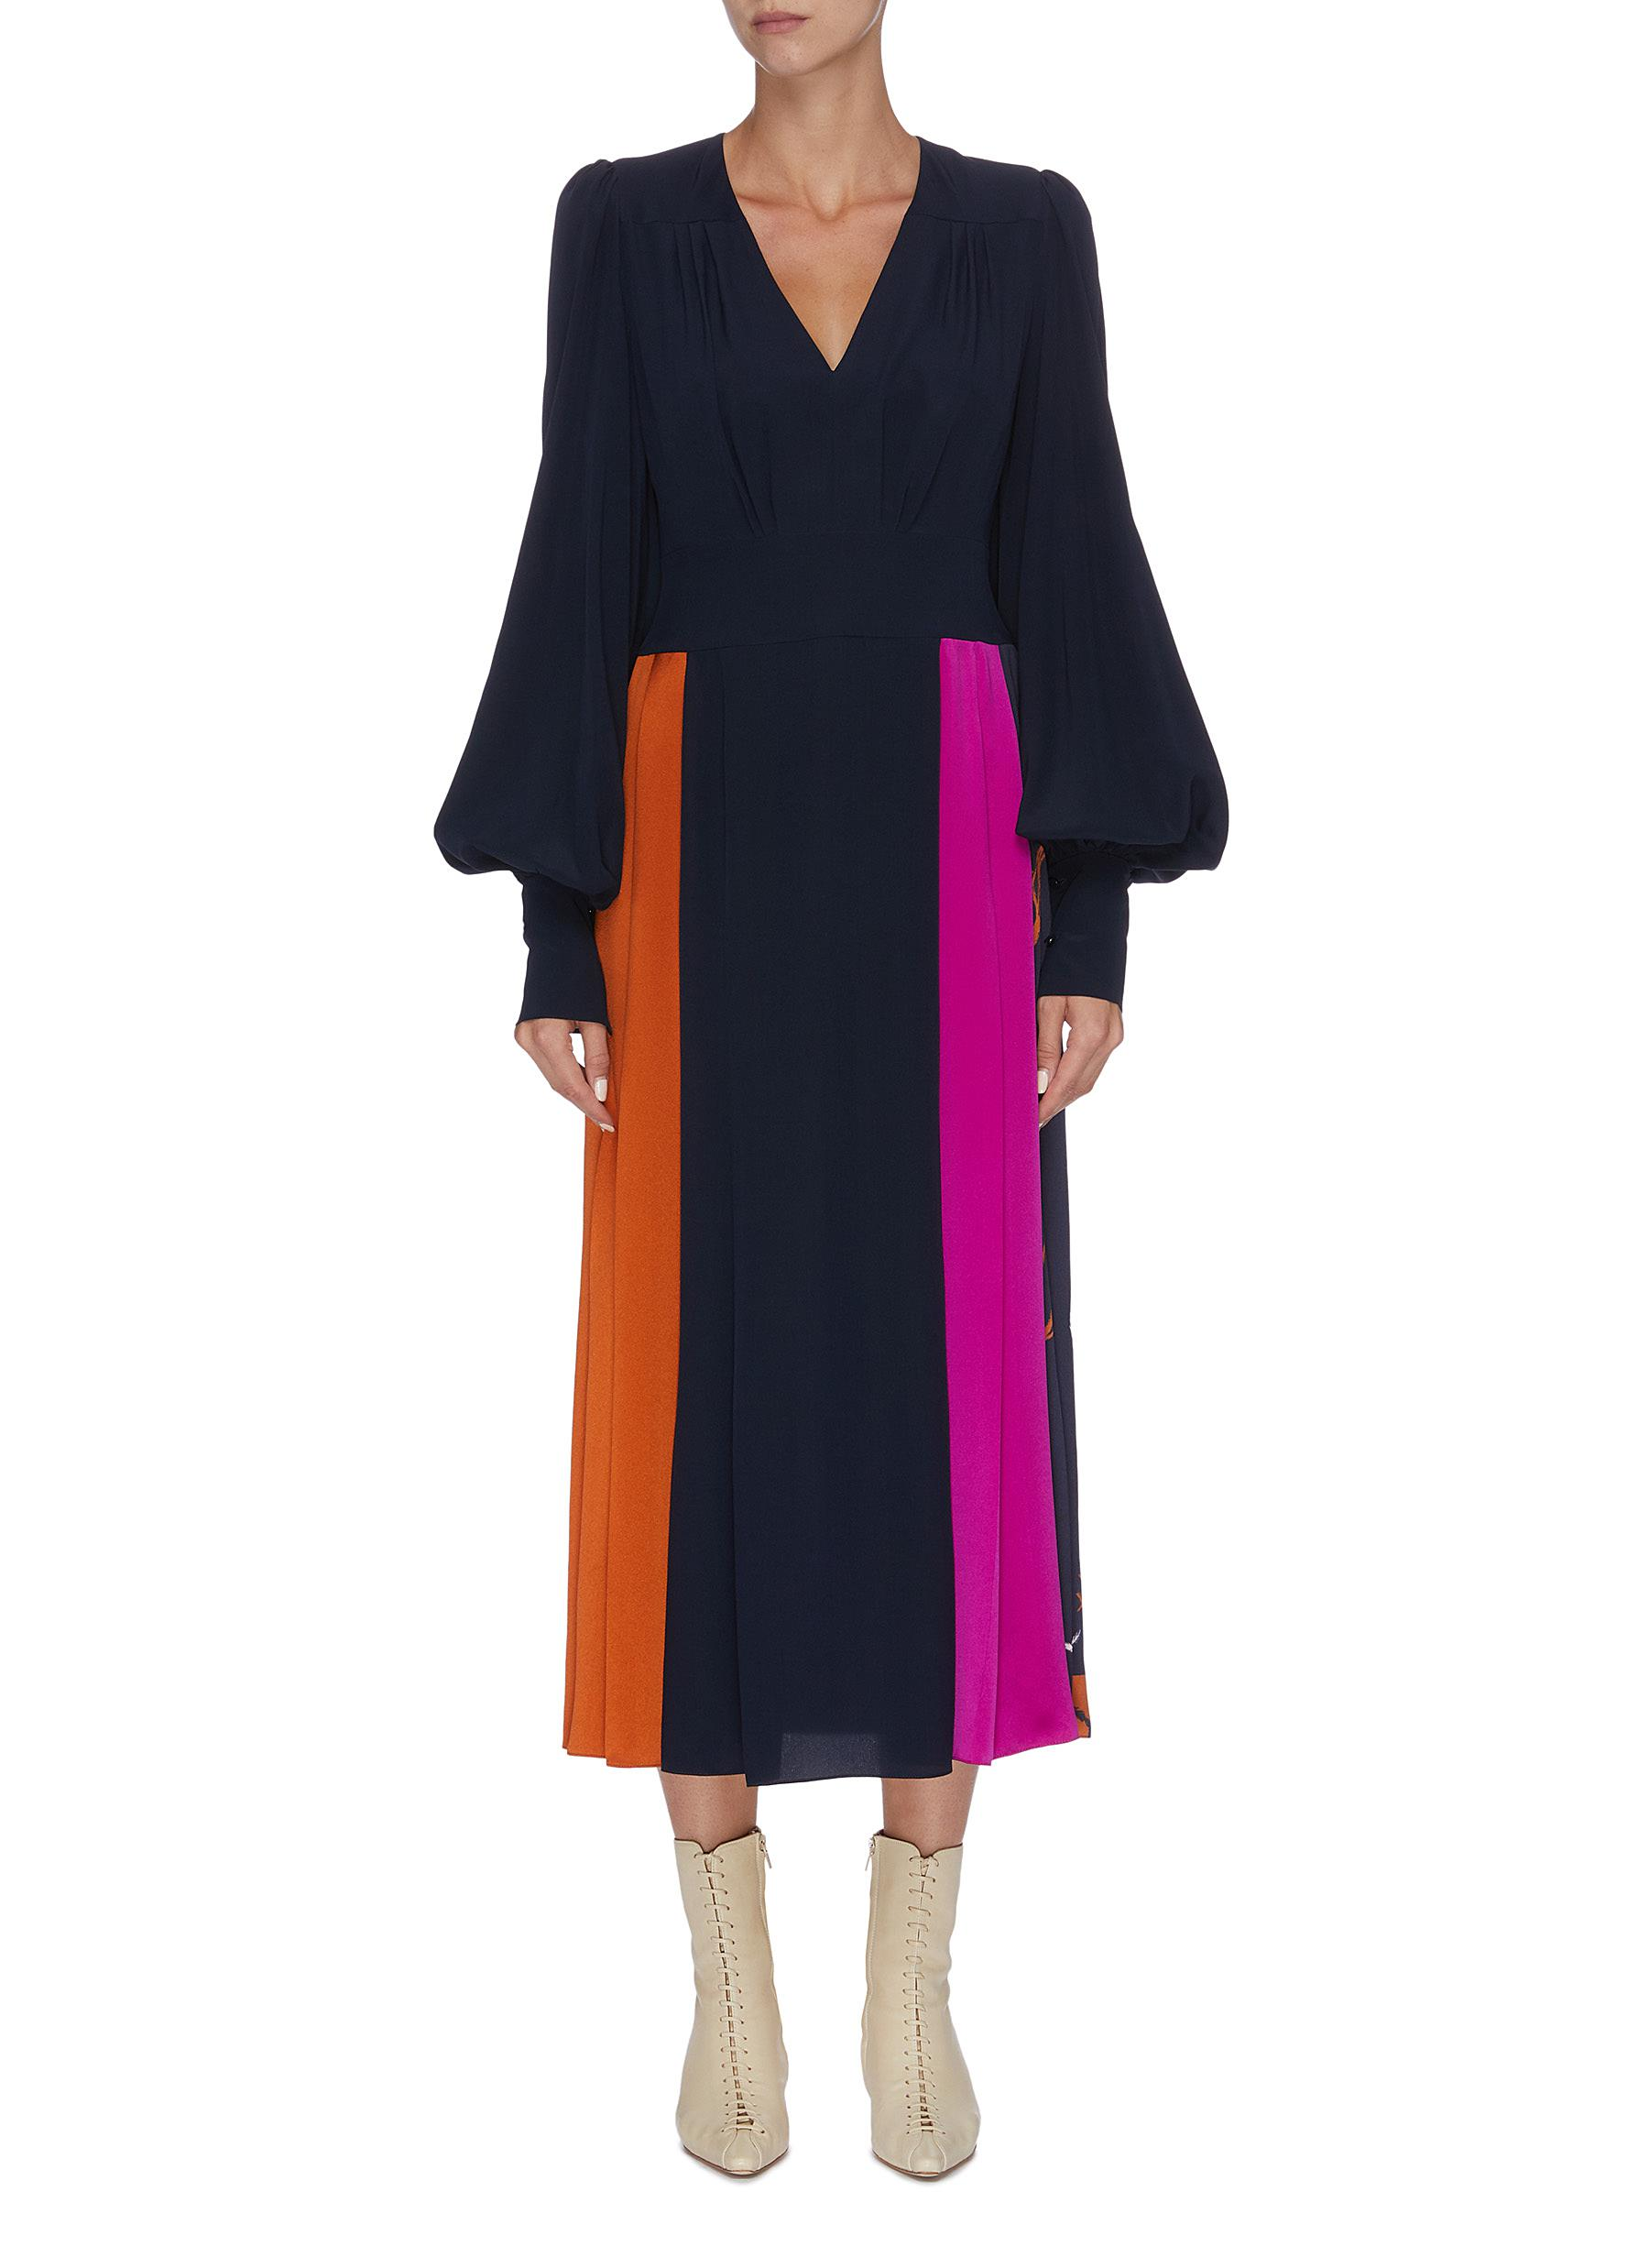 Teruko bishop sleeve colourblock drape dress by Roksanda